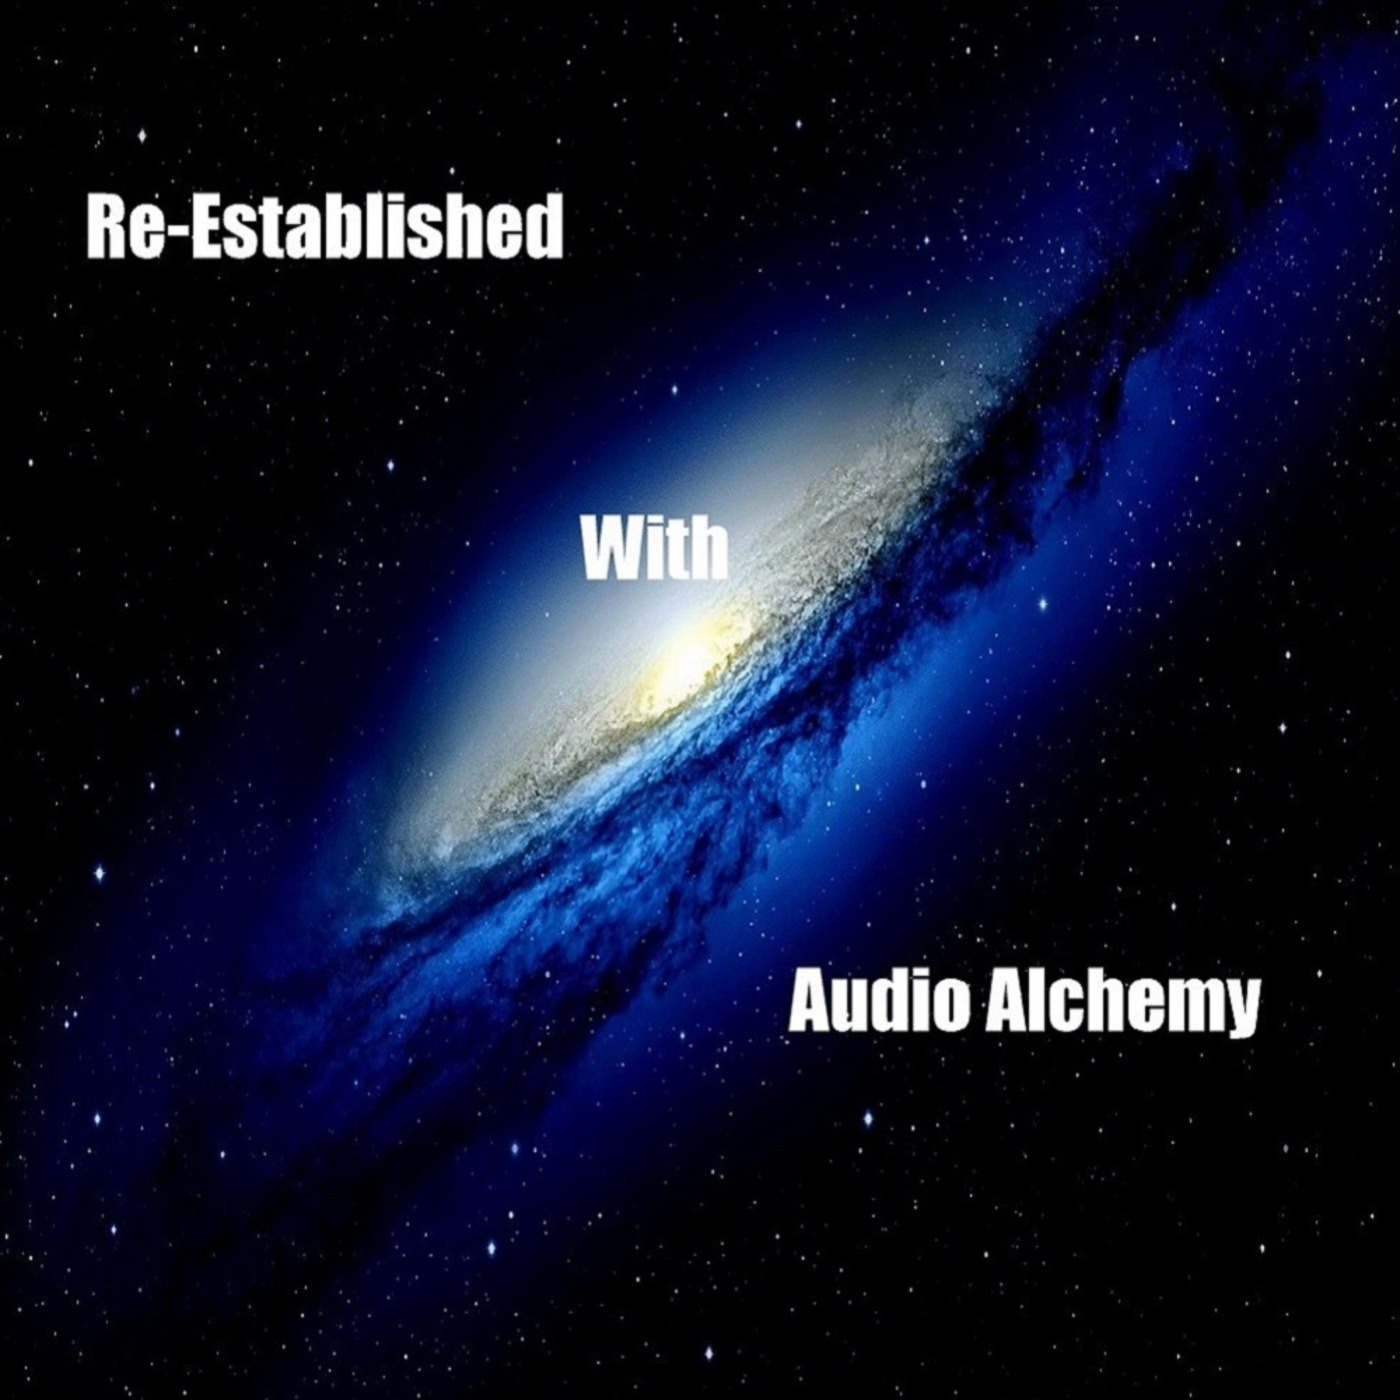 Re-Established with Audio Alchemy